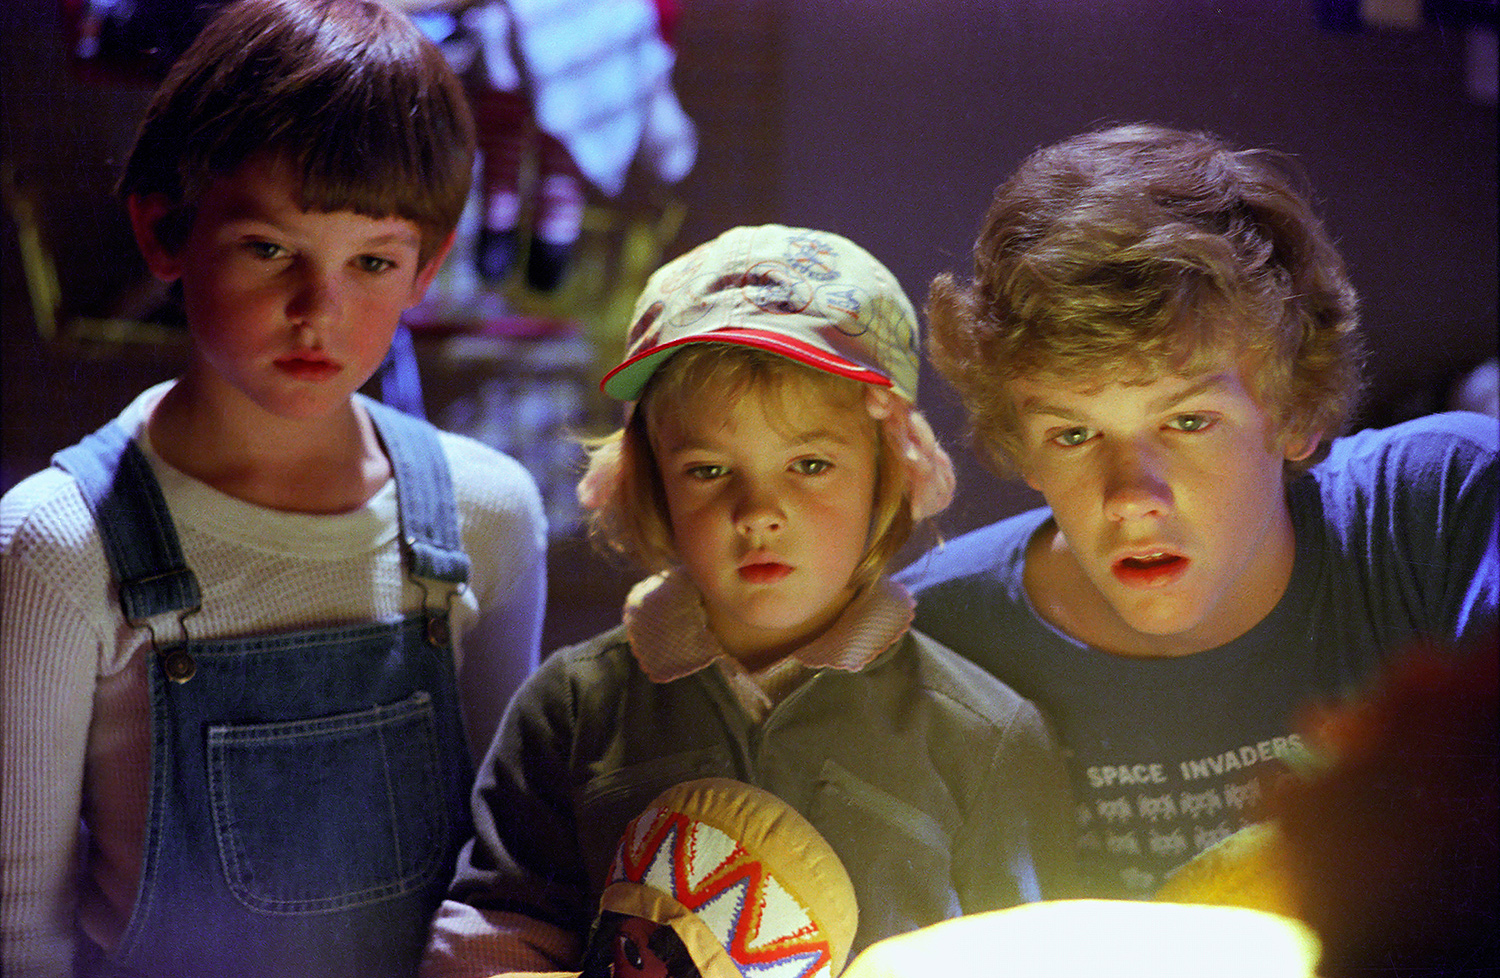 Henry Thomas, Drew Barrymore, and Robert Macnaughton